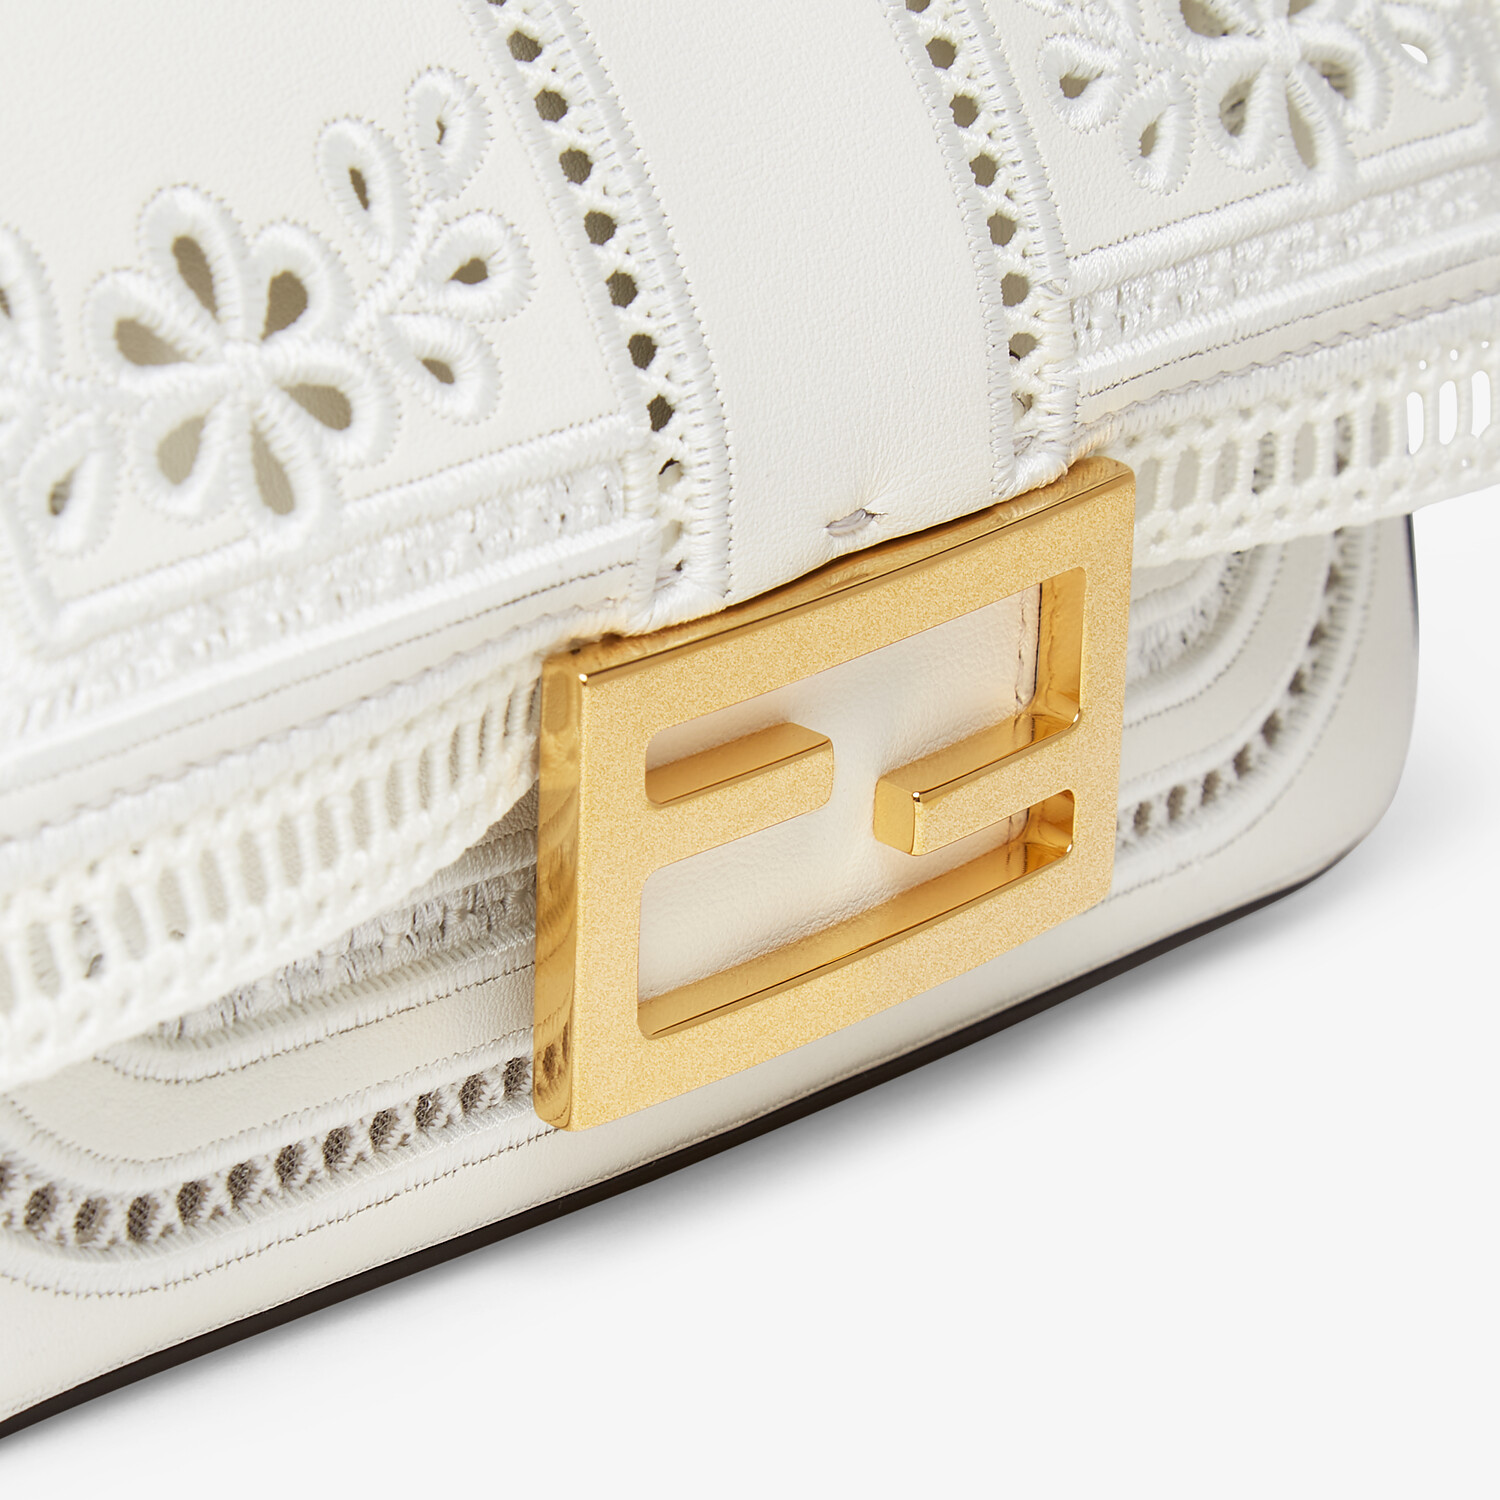 FENDI MINI BAGUETTE CHAIN - Embroidered white leather bag - view 5 detail